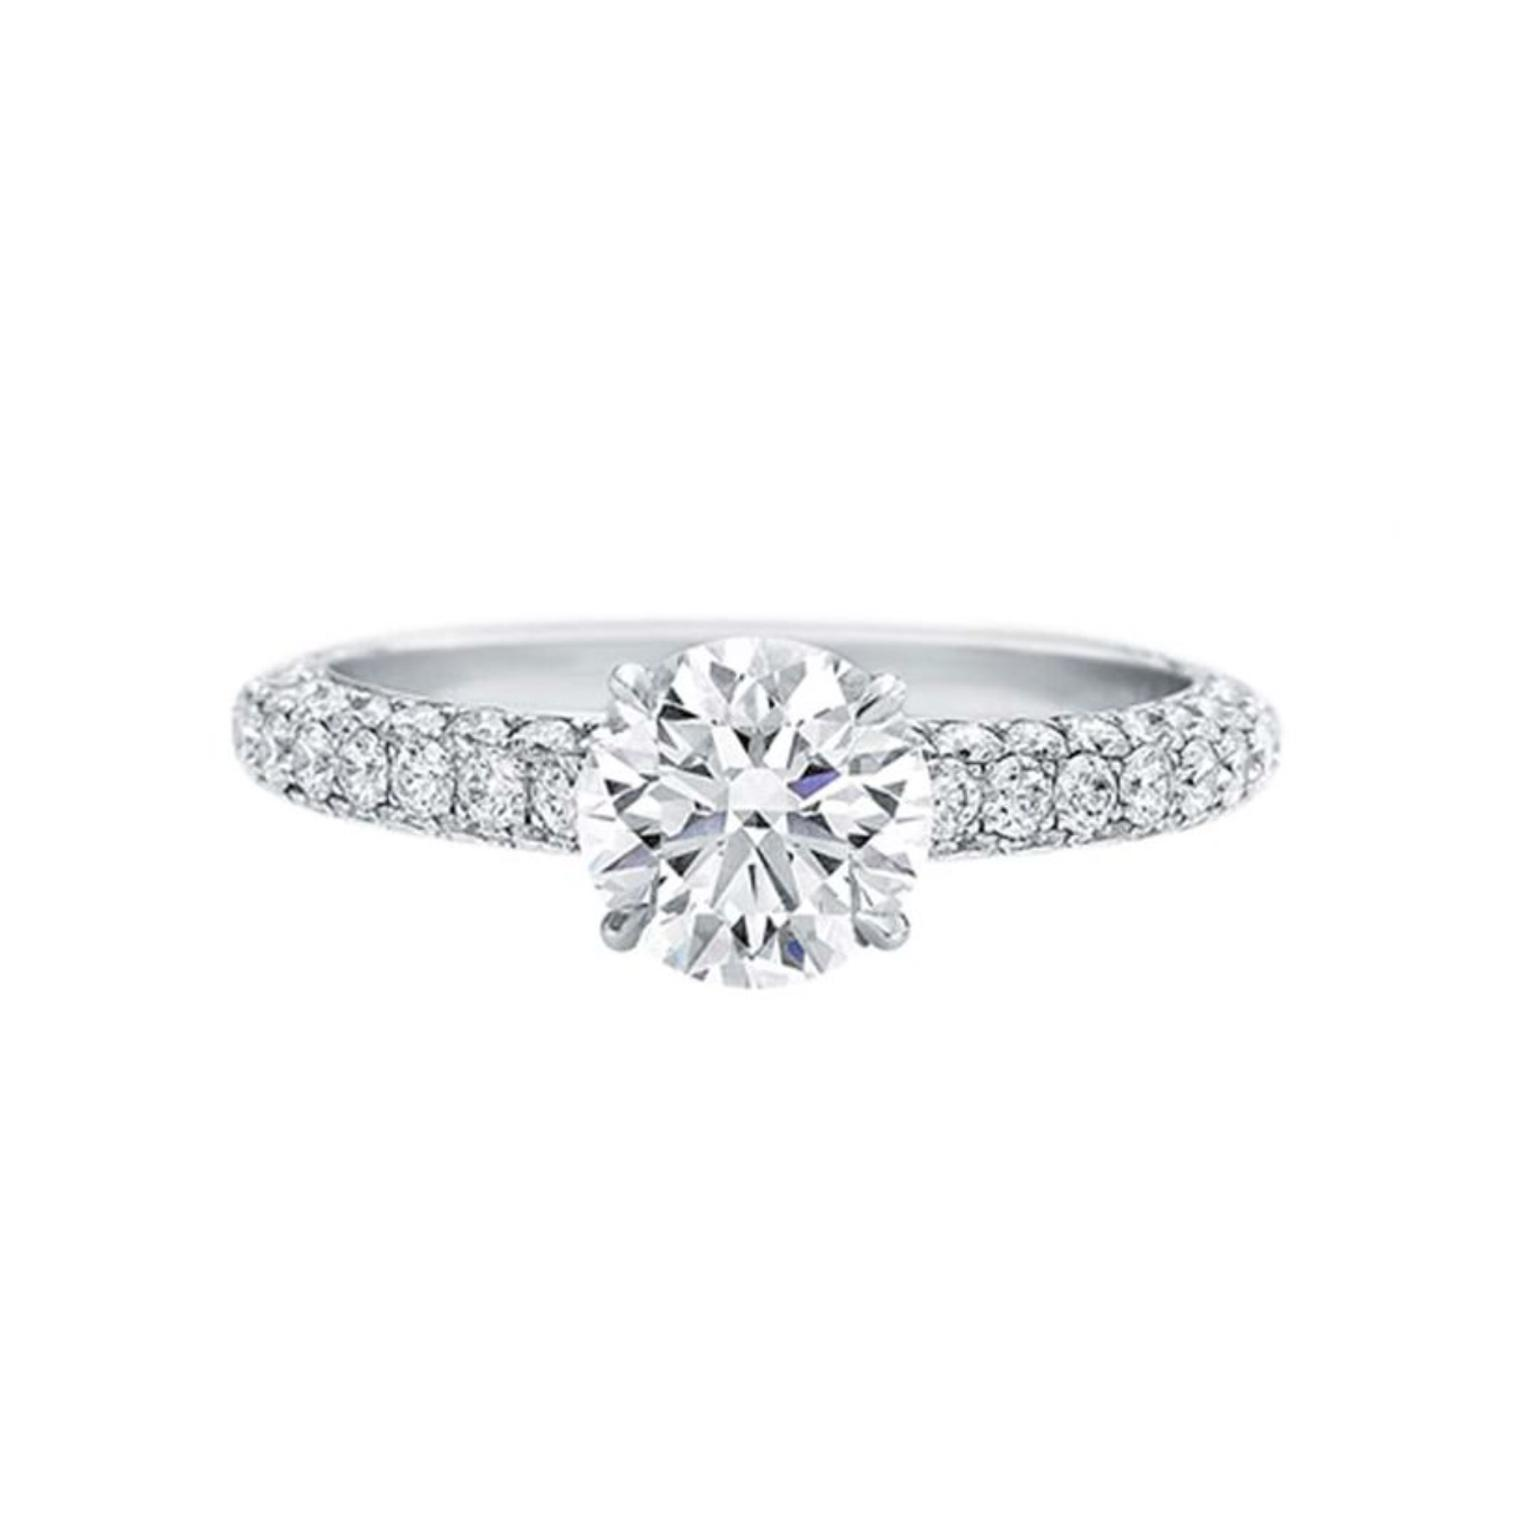 Harry Winston attraction 1 carat diamond engagement ring